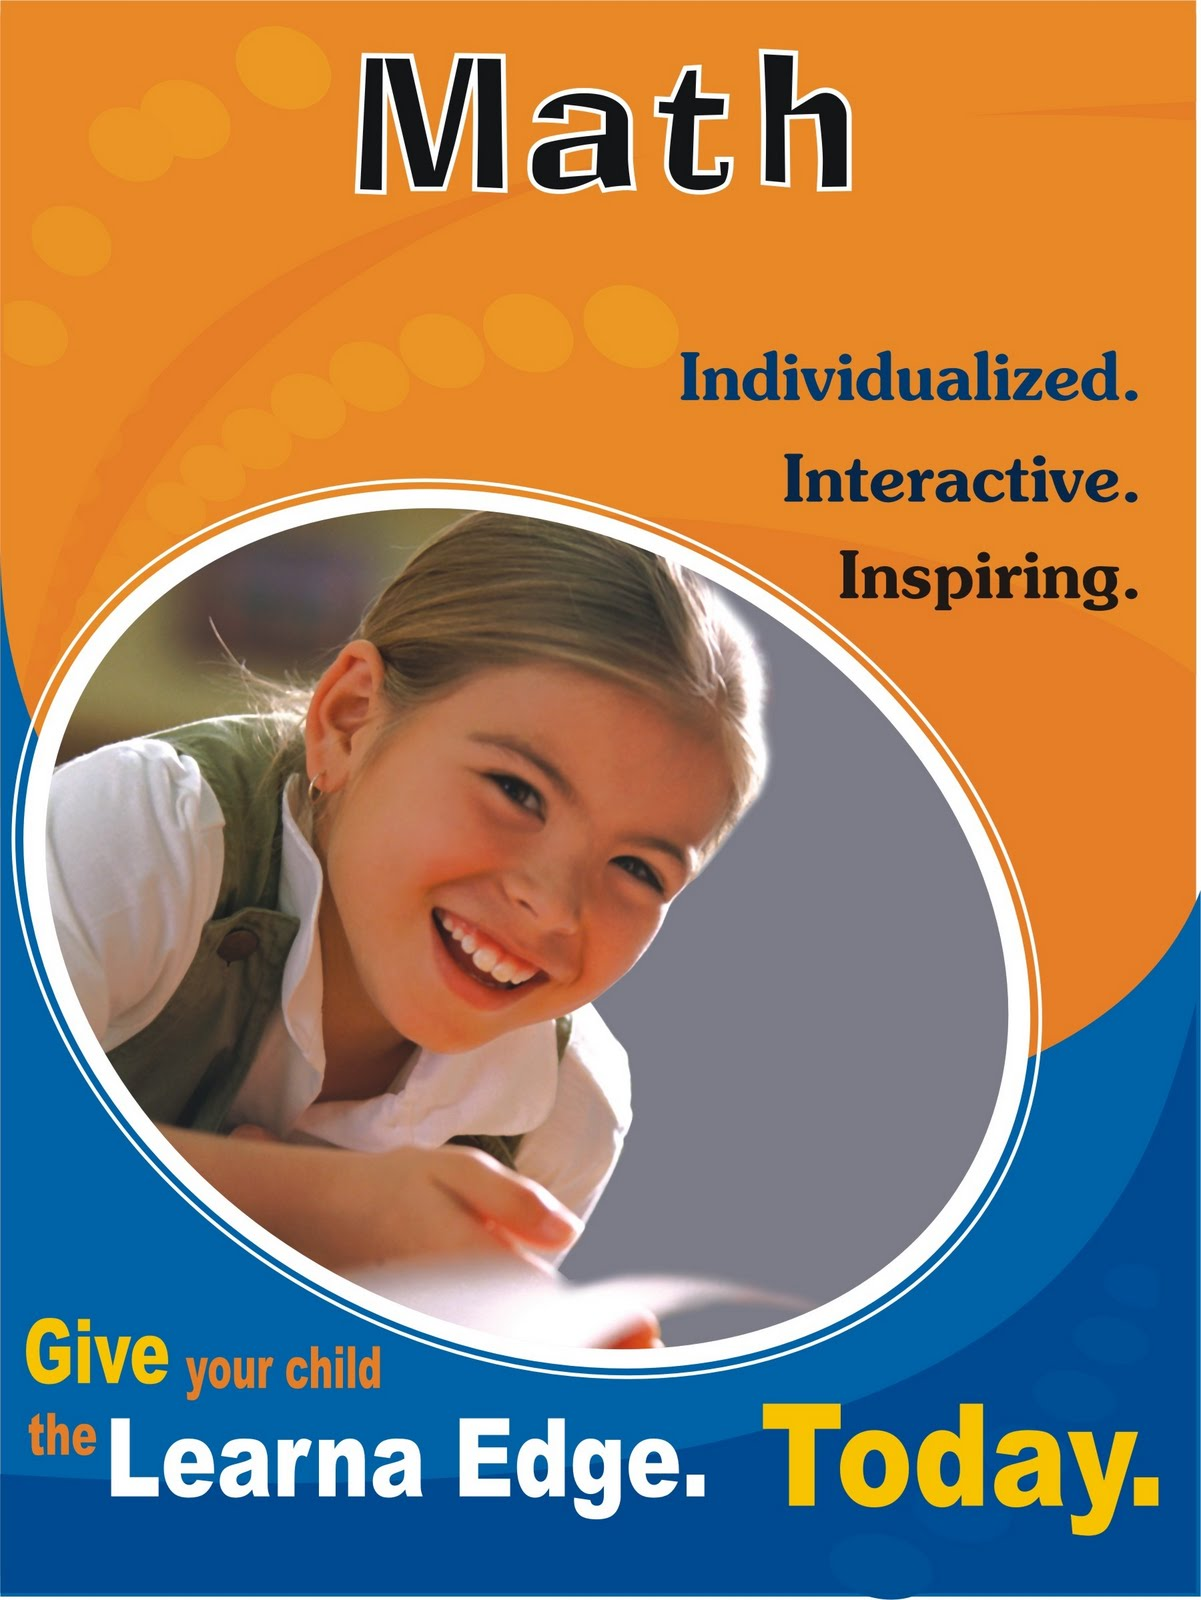 LEARNA HEARTLAND (Mississauga) - TUTORING: About Us